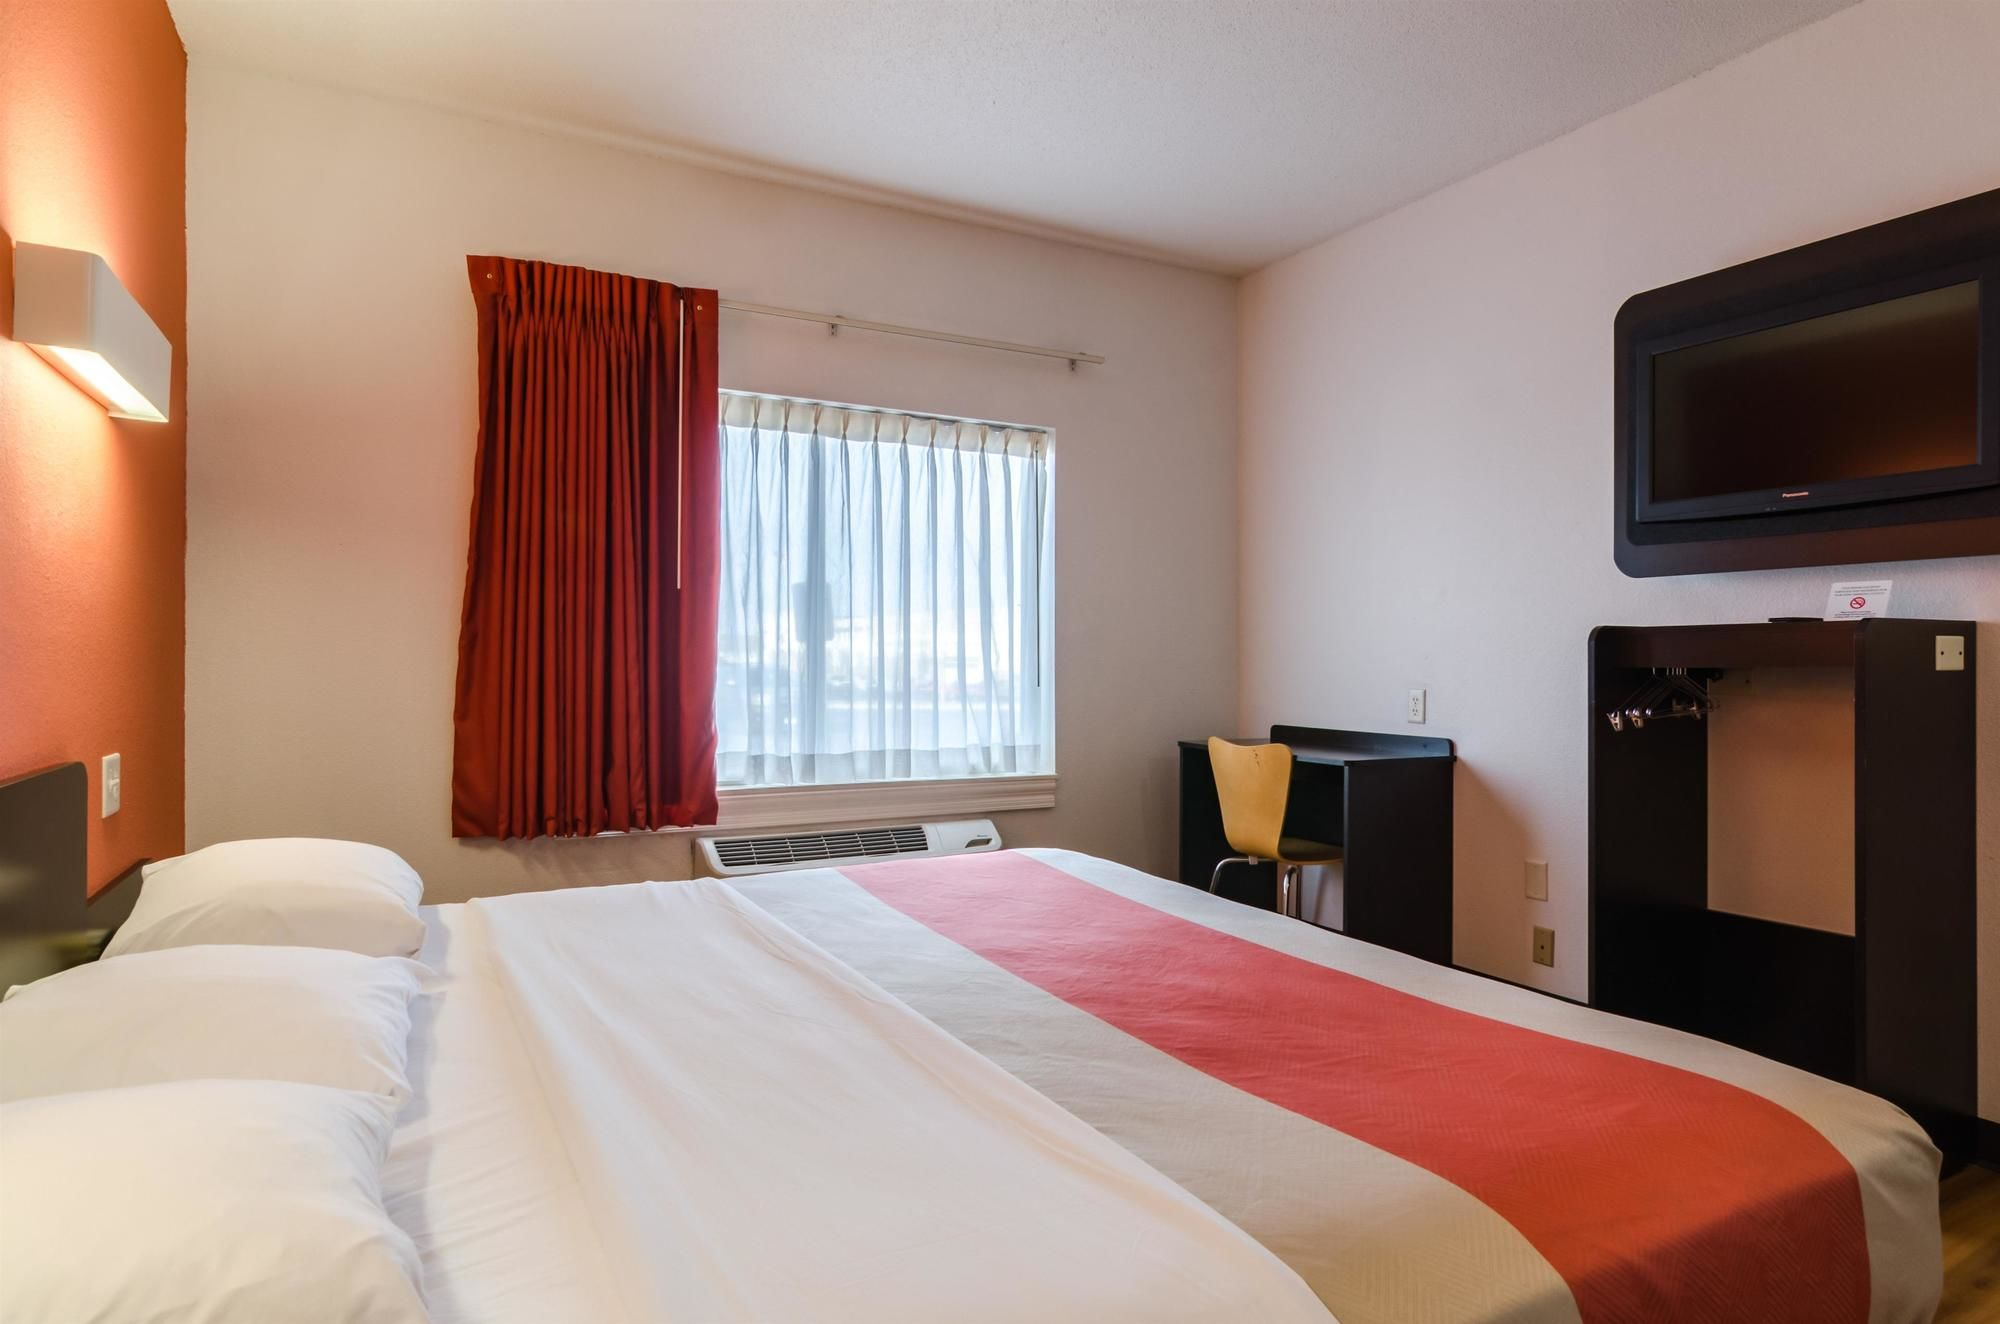 south hotel lincoln ne hor suite of rooms the make residence inn hotels your to clsc most journey extended lnkri suites stay in